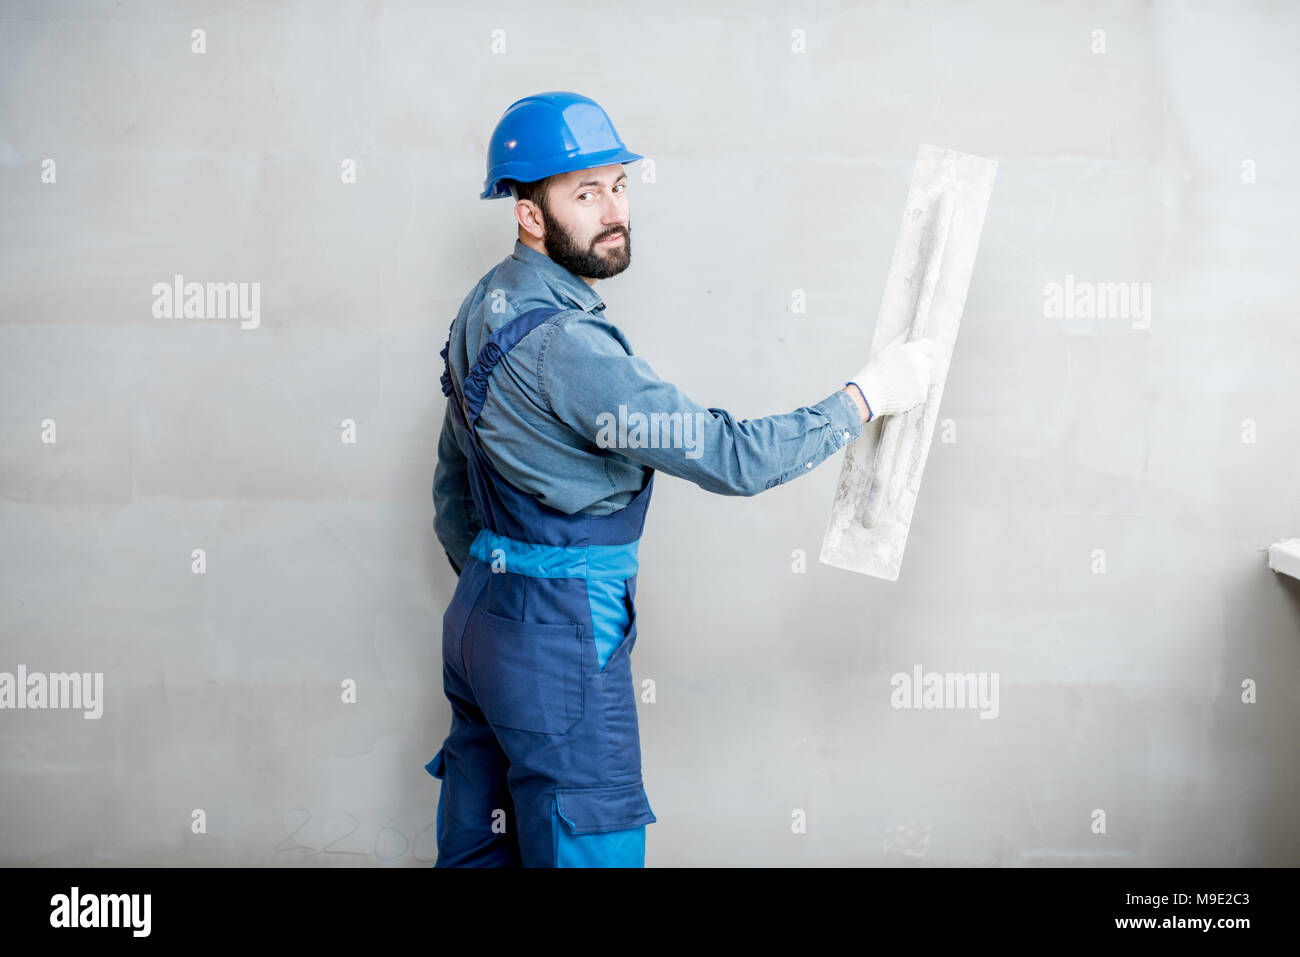 Plasterer working indoors Stock Photo